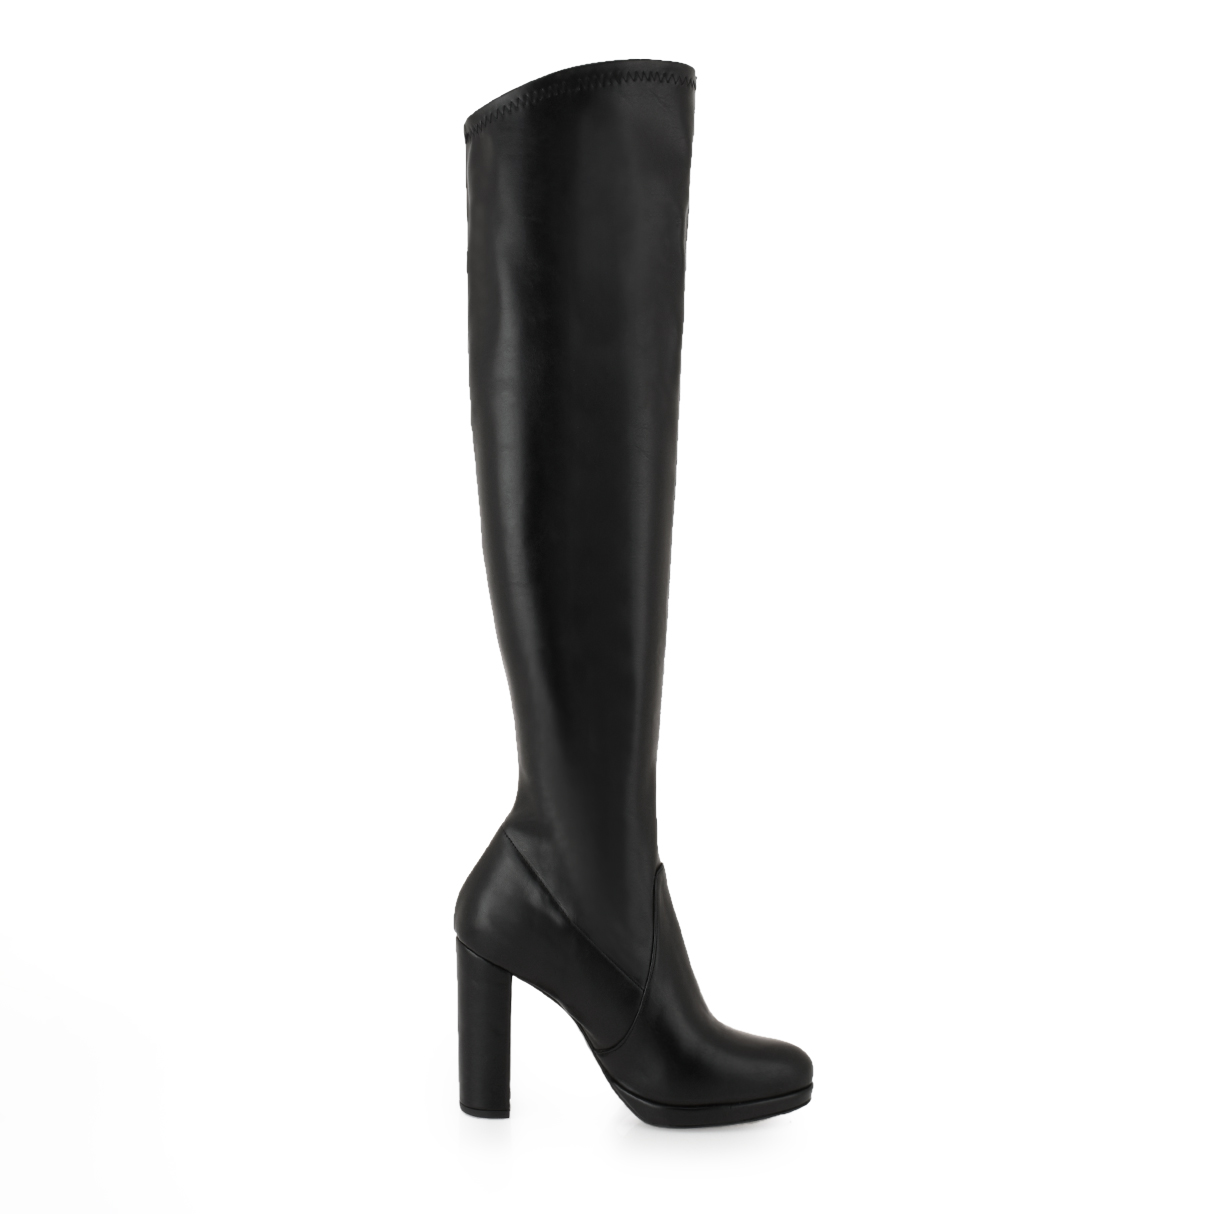 OVER THE KNEE BOOTS σχέδιο: L21009764